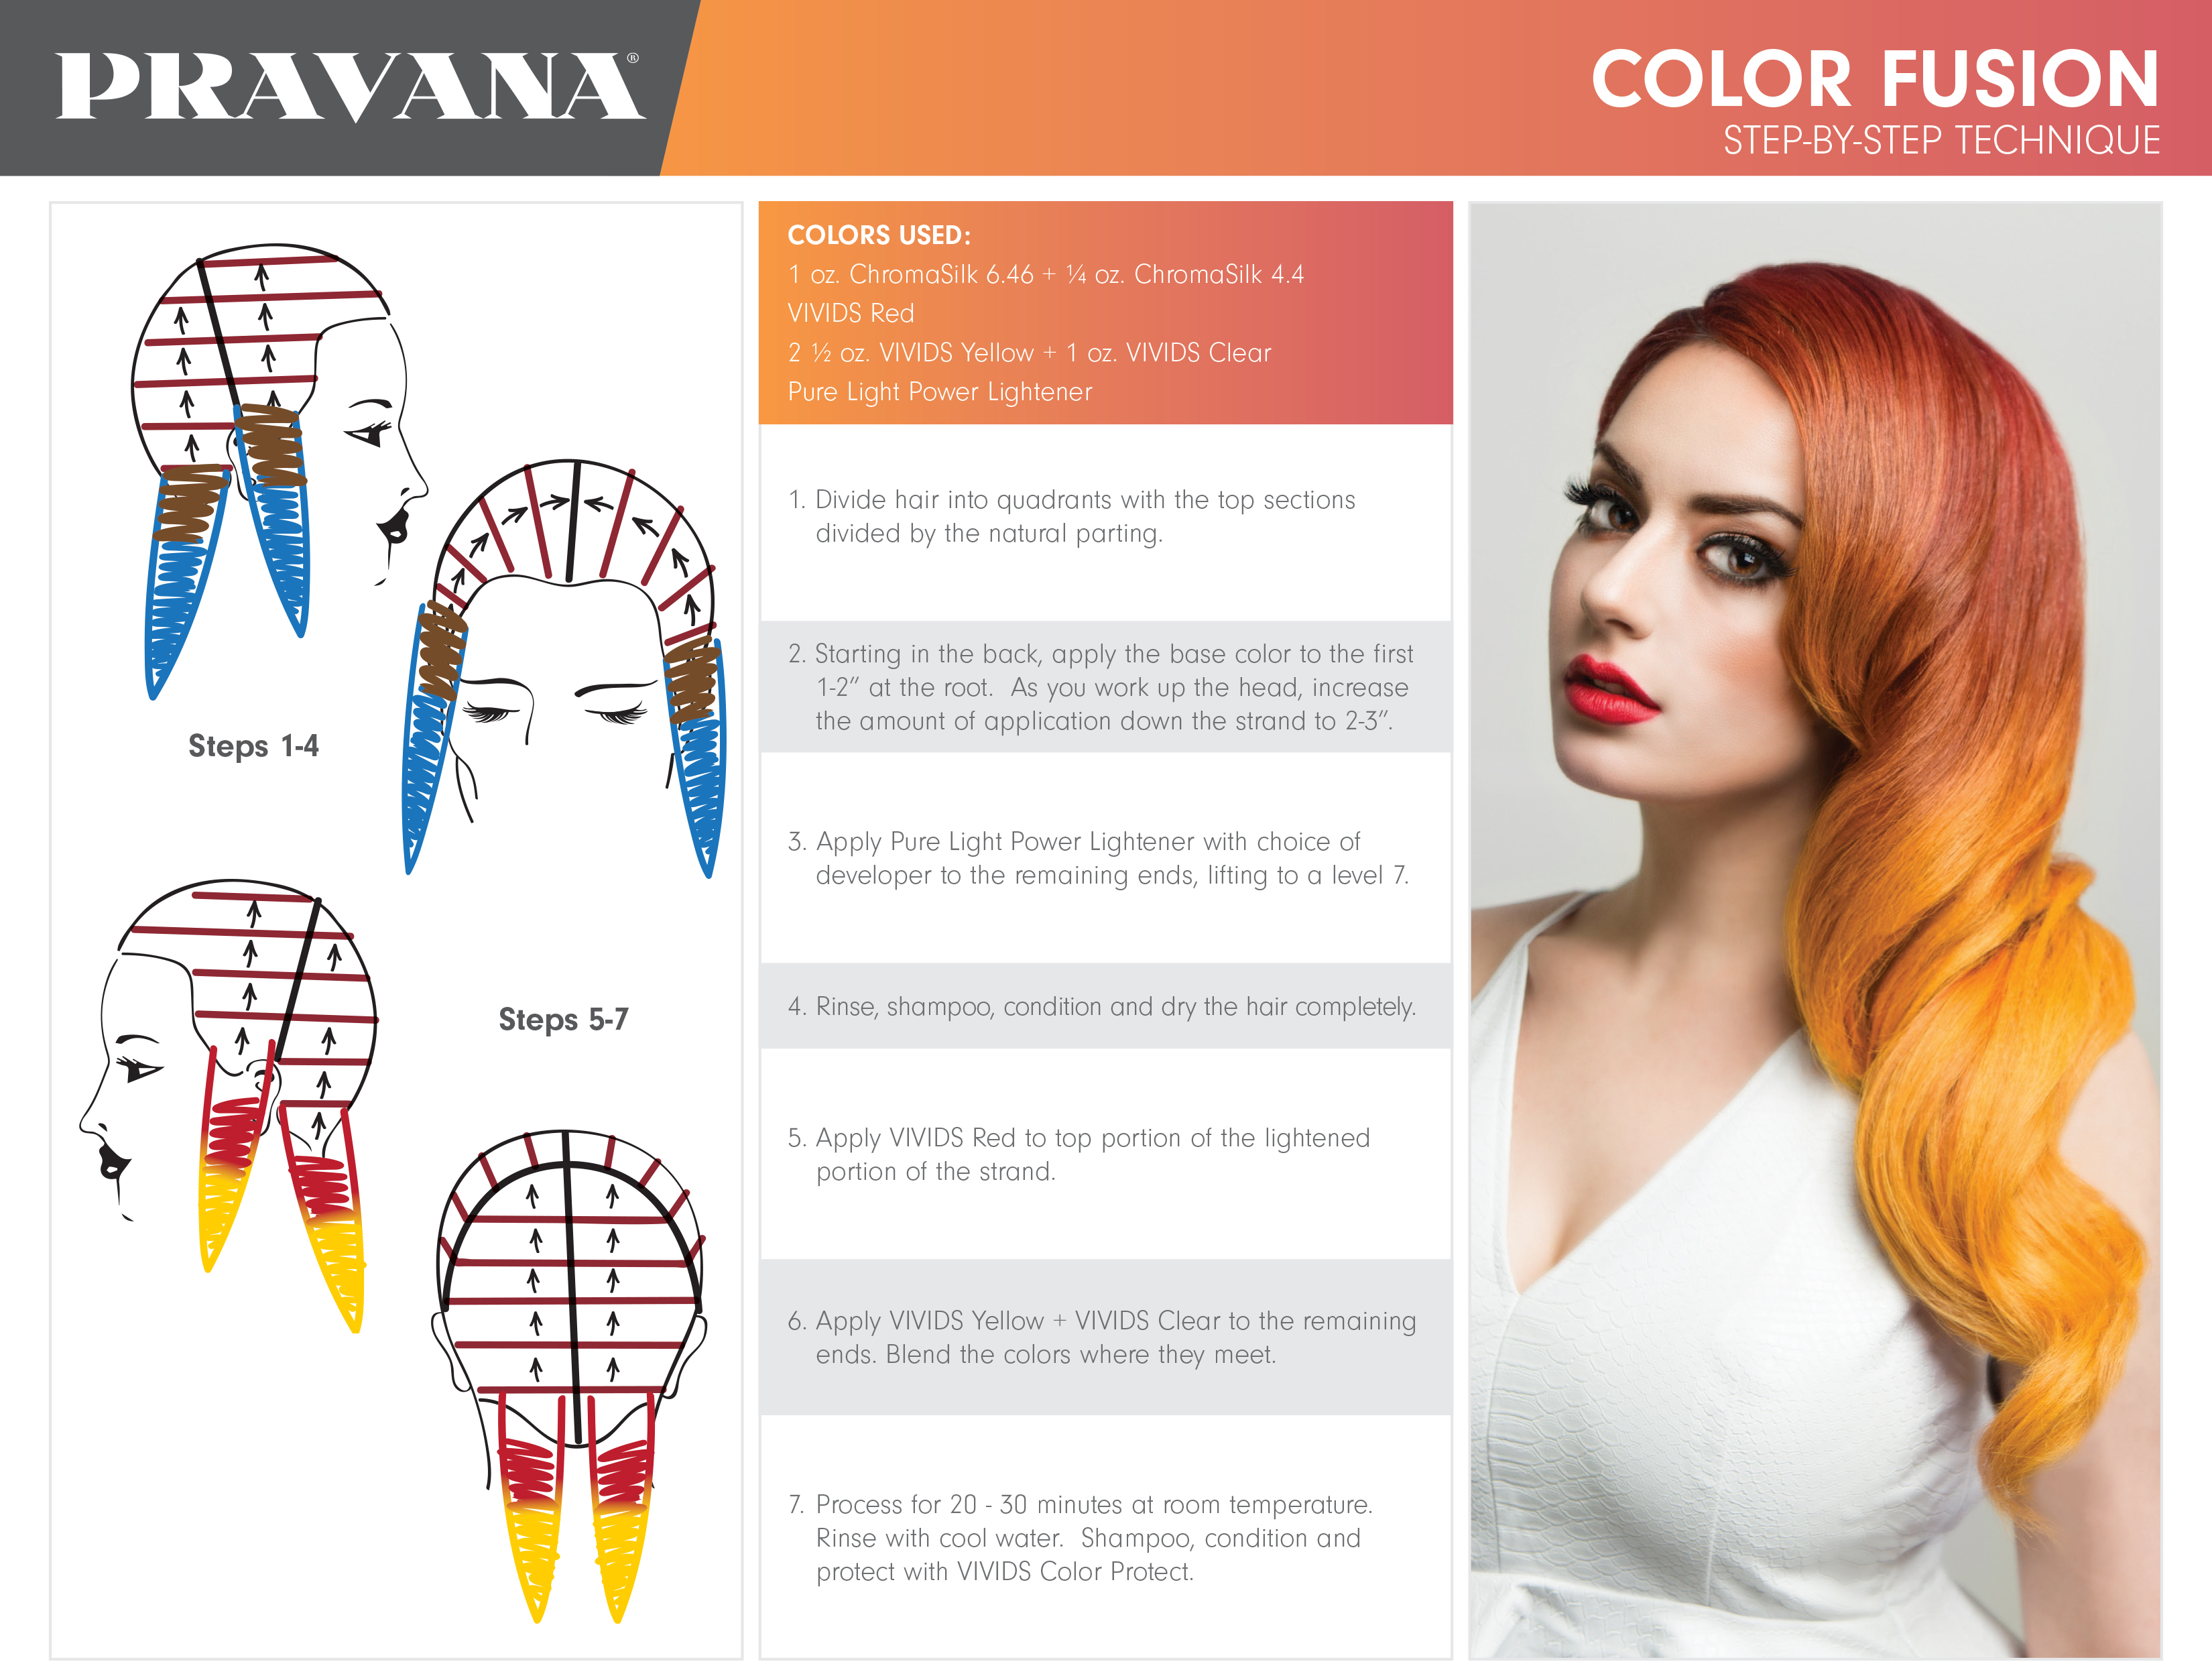 pravana hair color hair care products for the foto cantik